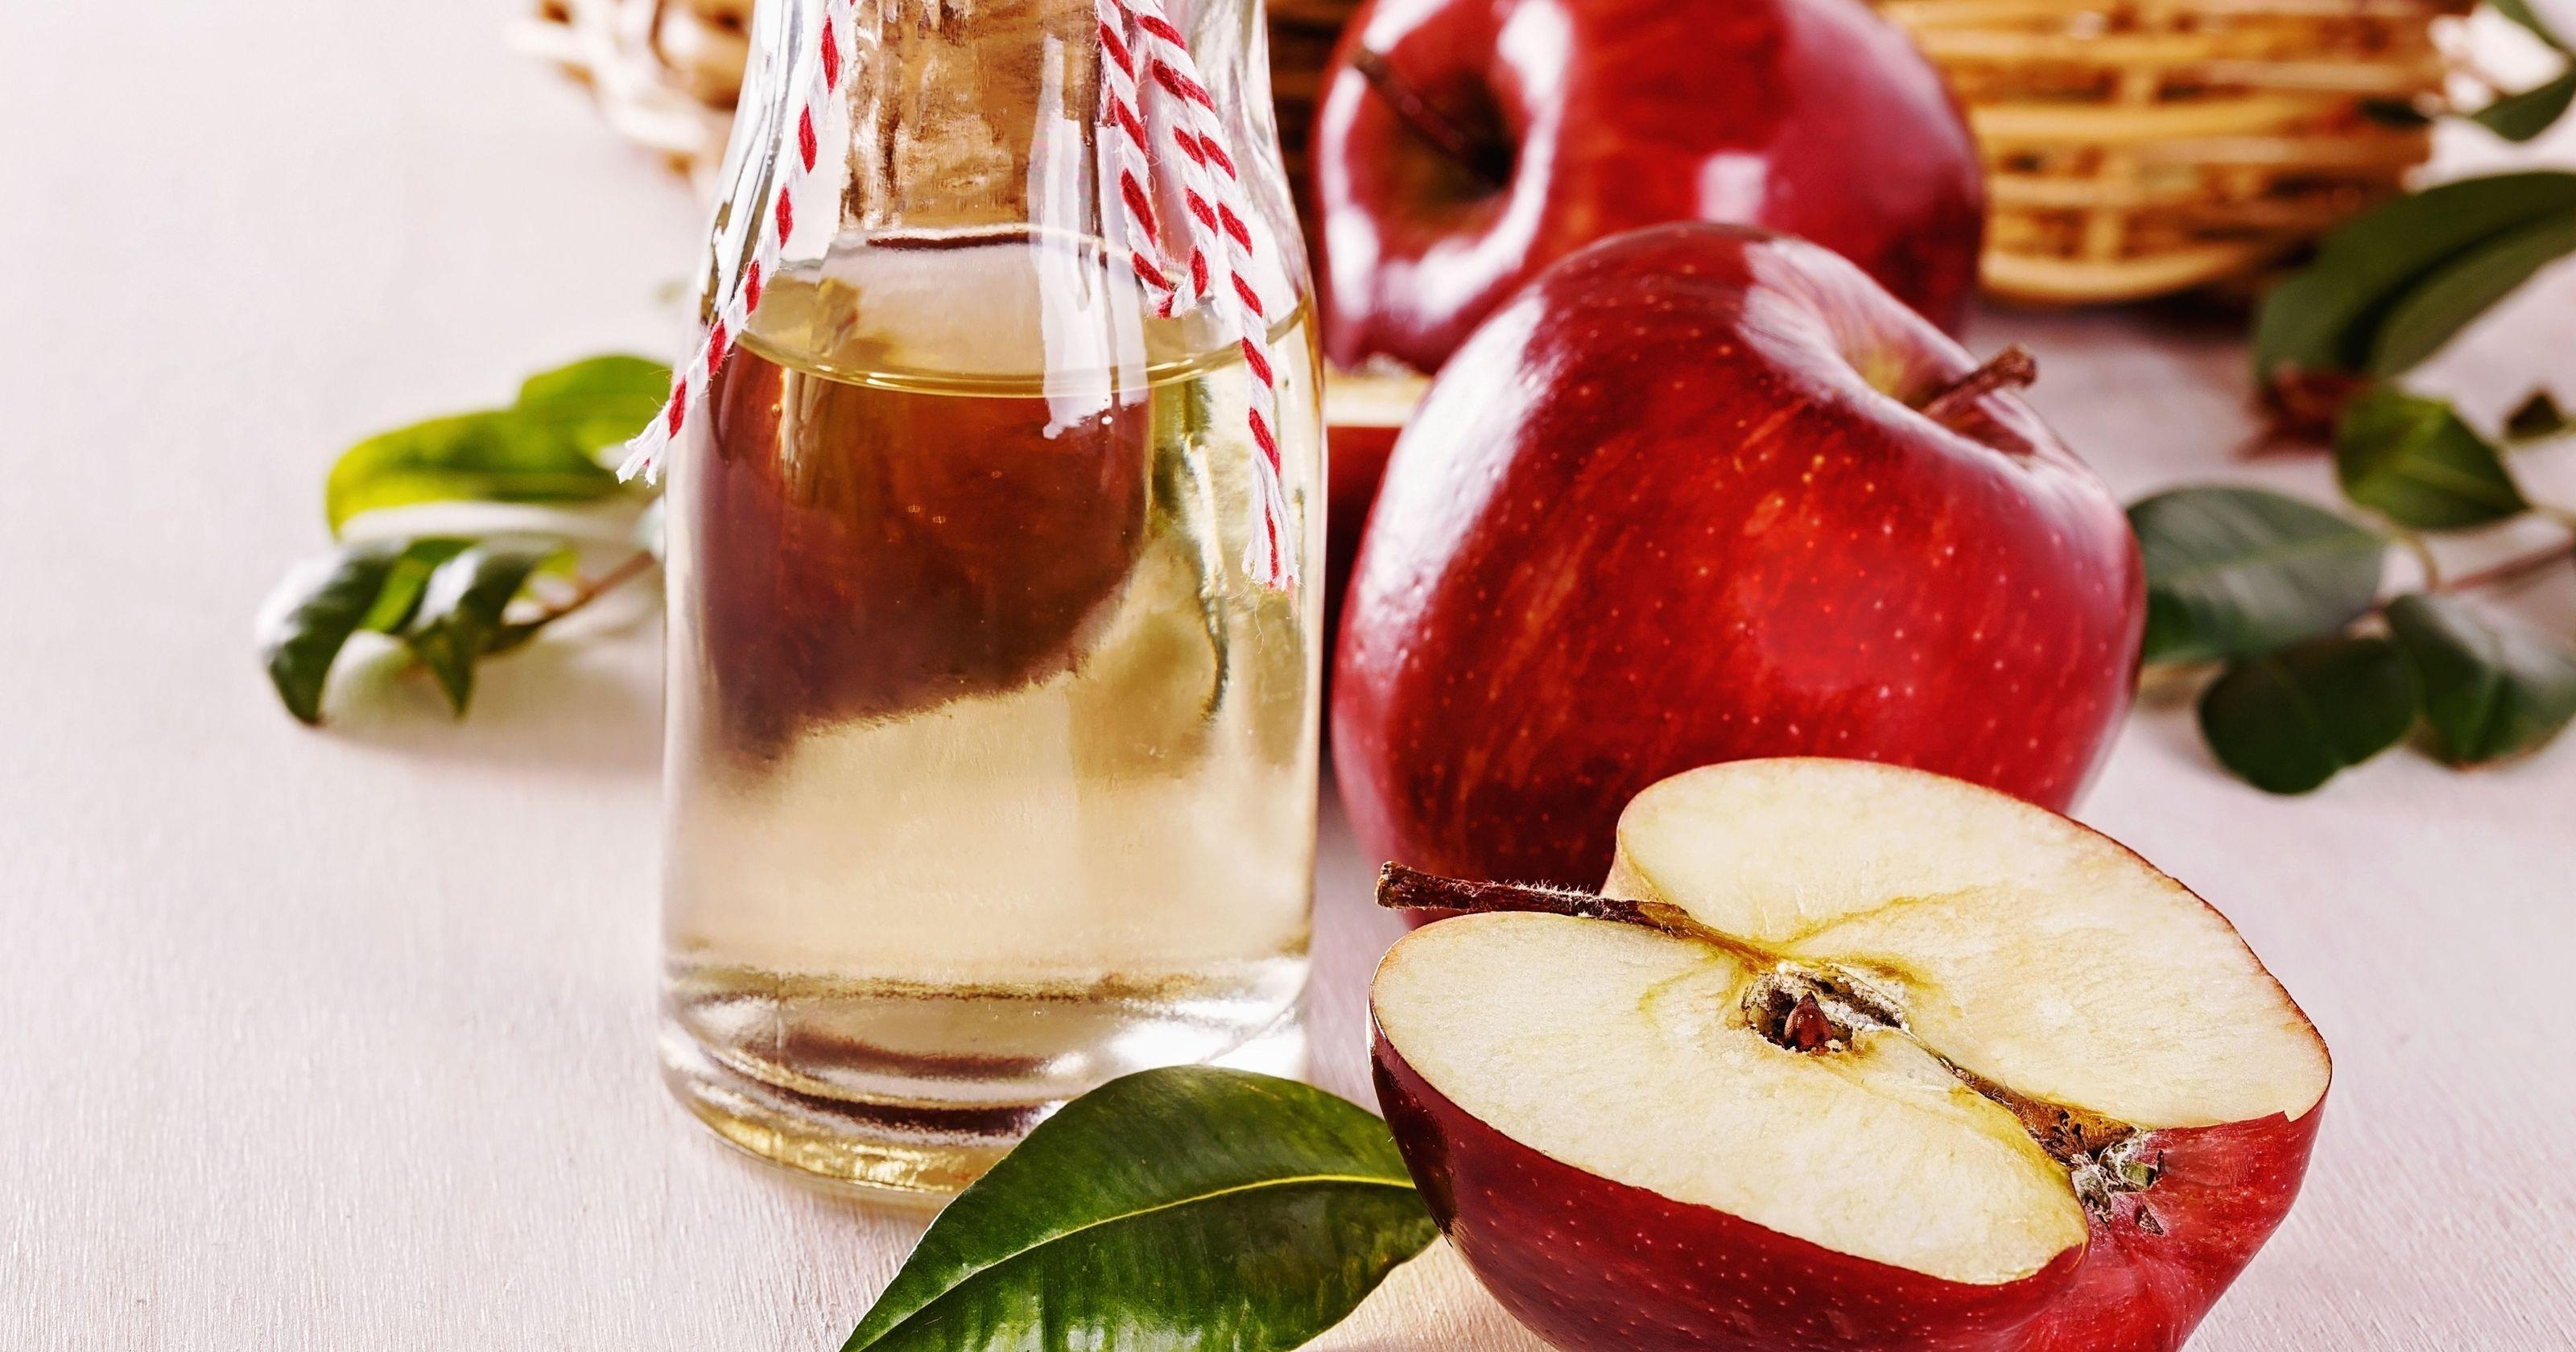 How Apple Cider Vinegar Can Help With Diabetes